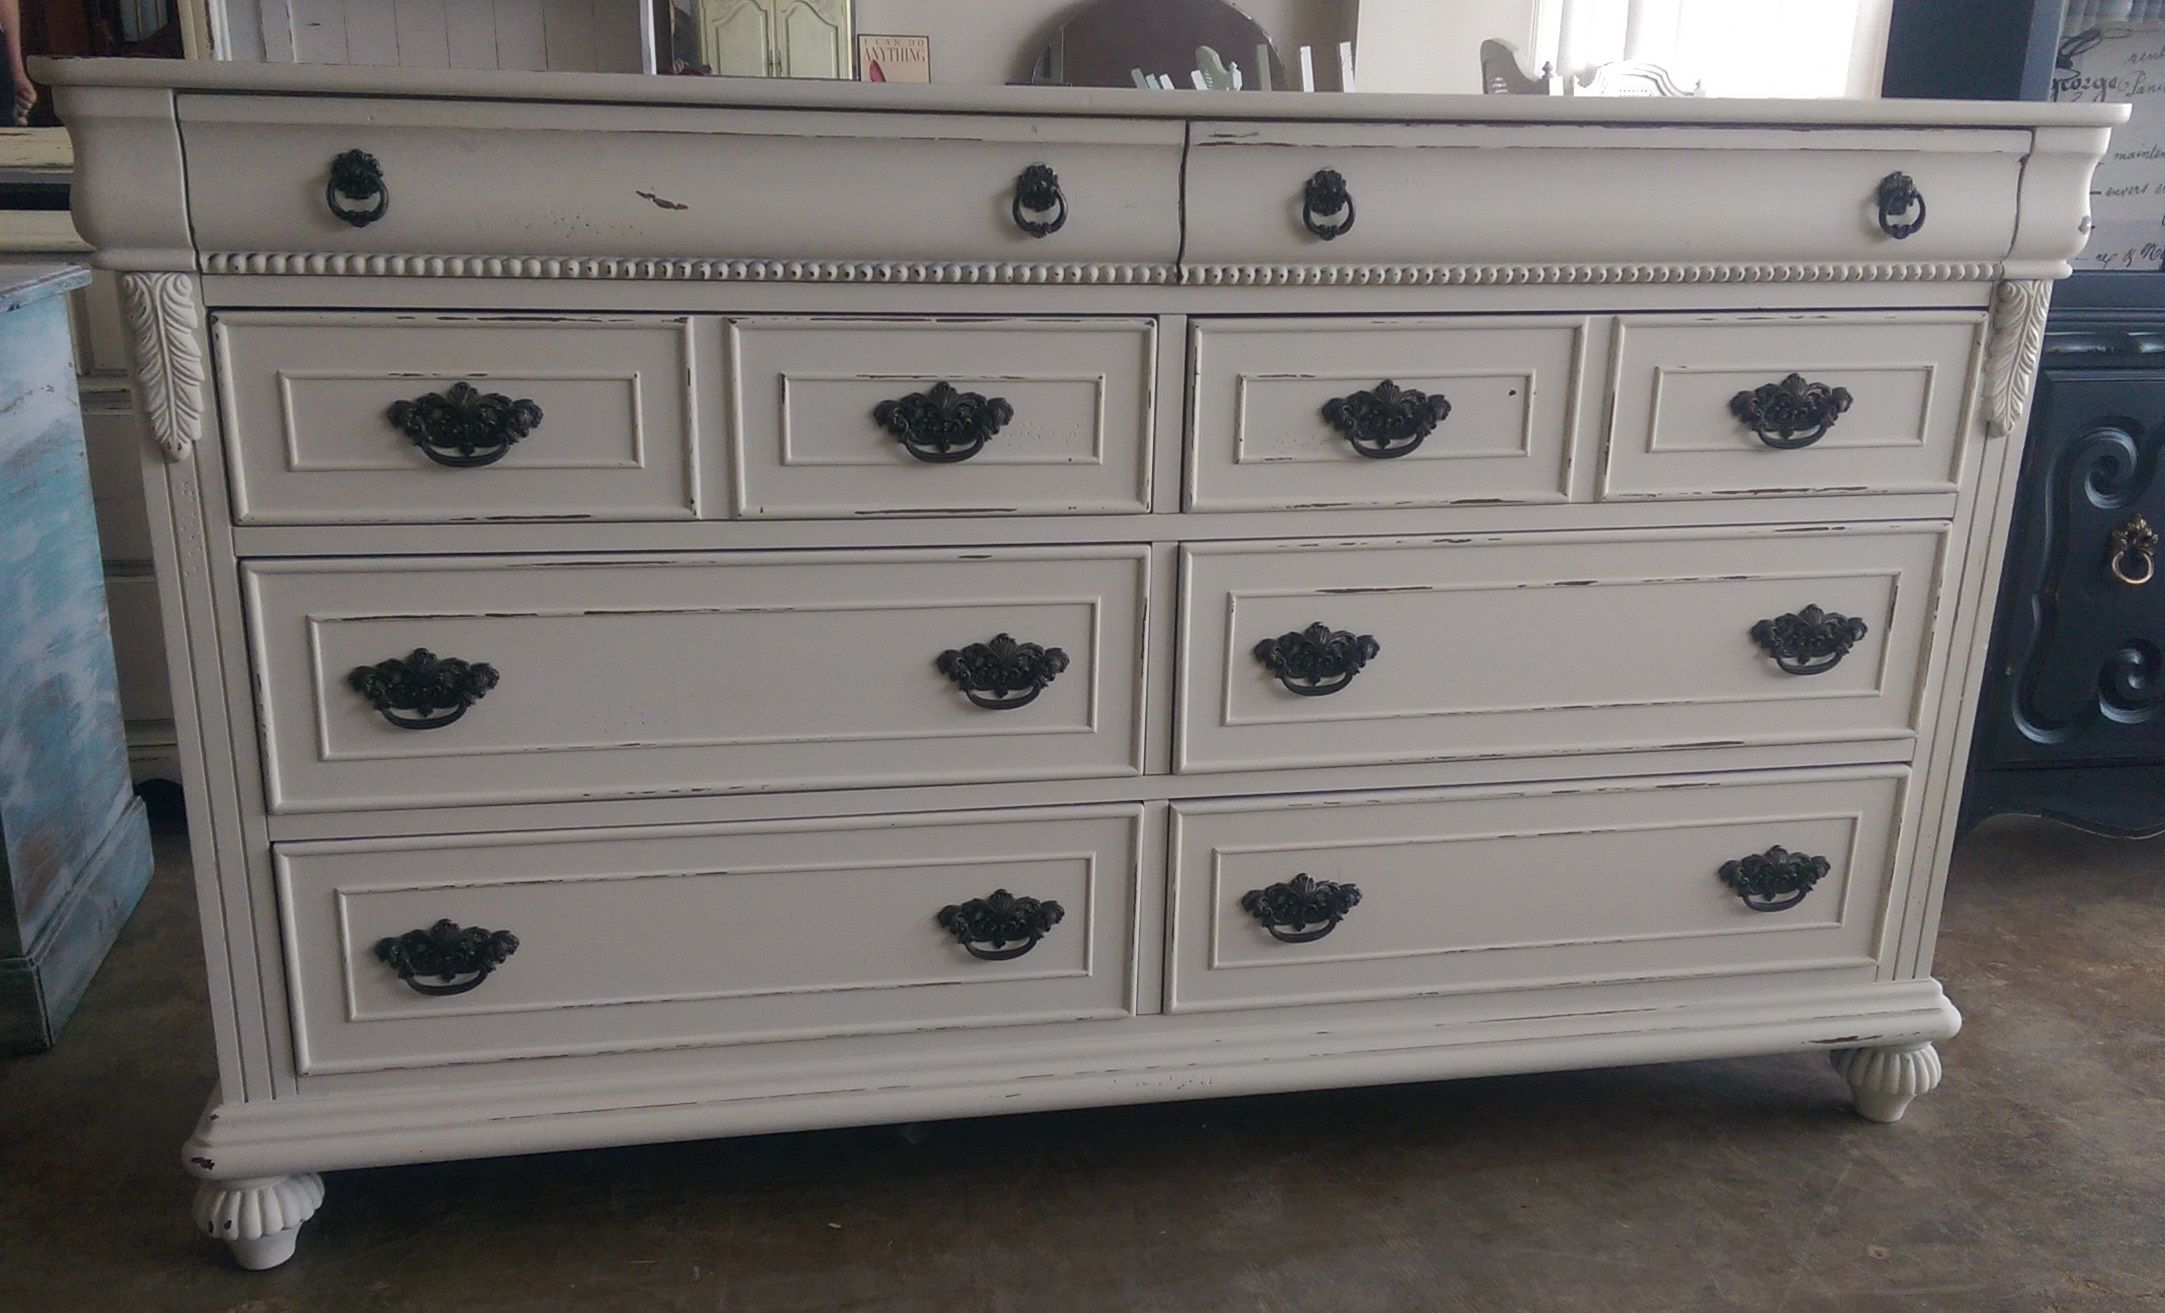 Check Out This Huge Dresser I Painted It A Distressed Off White What Do You Think The Dimensions Are 64 L 18 W 38 H Sold For 425